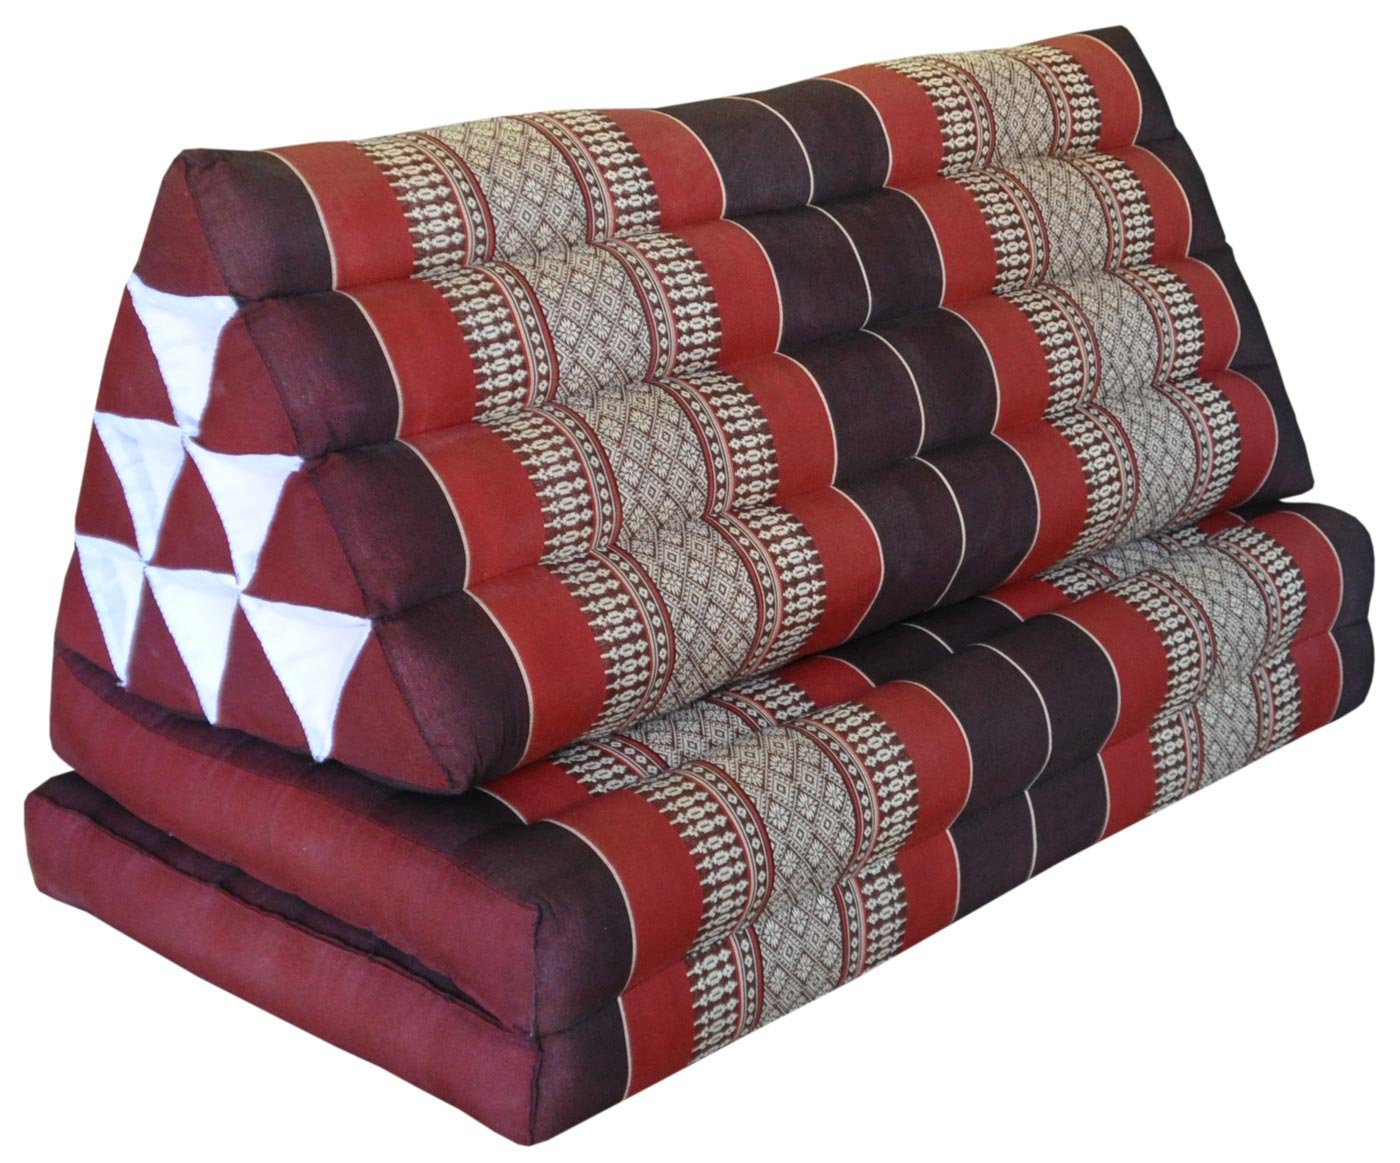 Thai triangle cushion XXL, with 2 folding seats, burgundy/red, sofa, relaxation, beach, pool, meditation, yoga, made in Thailand. (82317) by Wilai GmbH